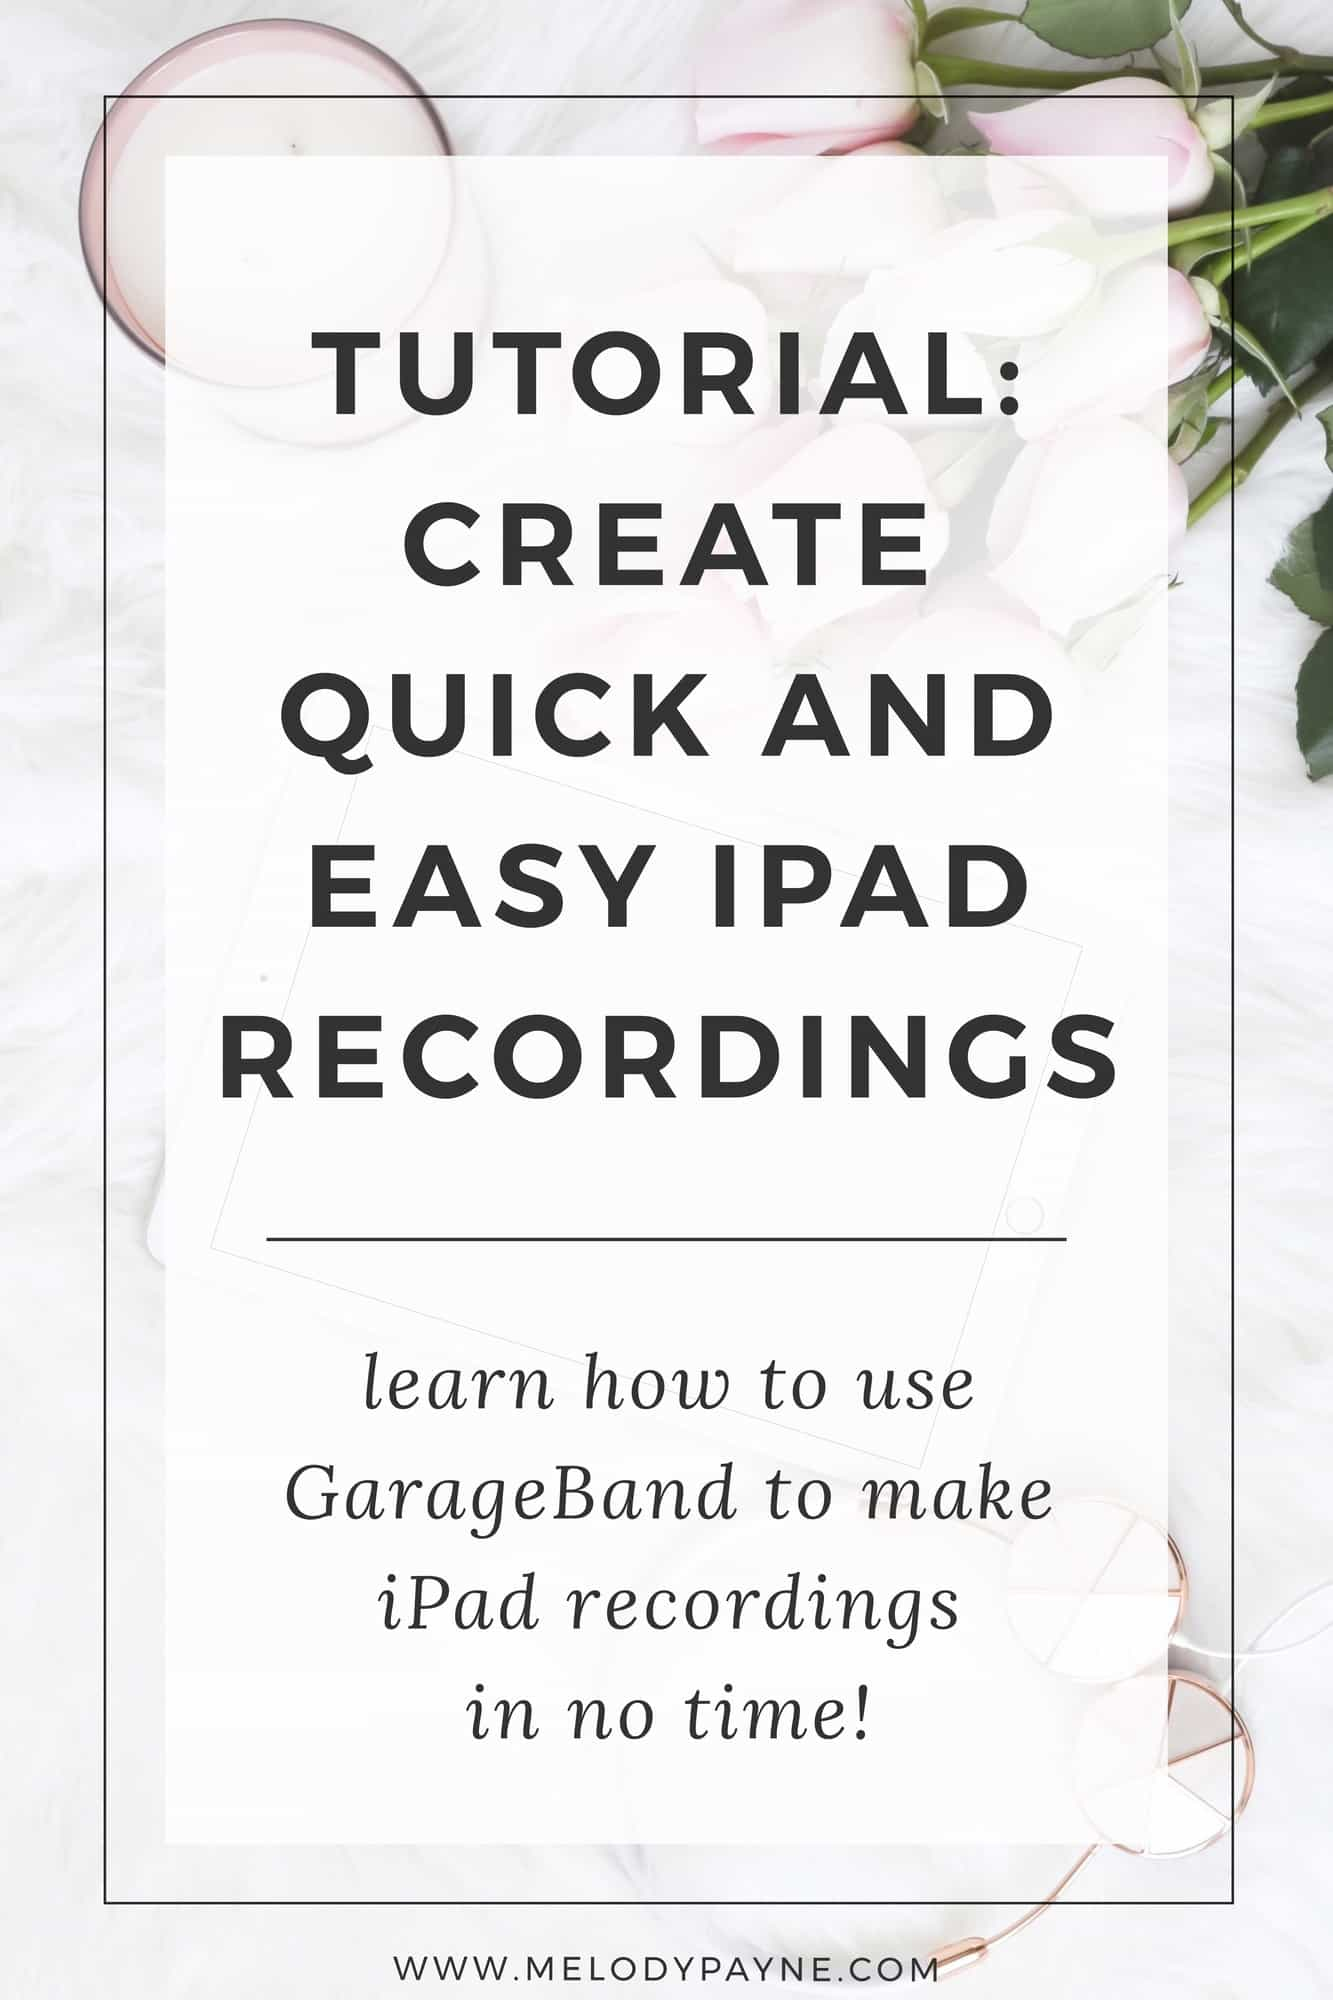 Garageband 101 how to create quick easy recordings on your ipad if you enjoyed this post use the sharing buttons below to spread the word baditri Images